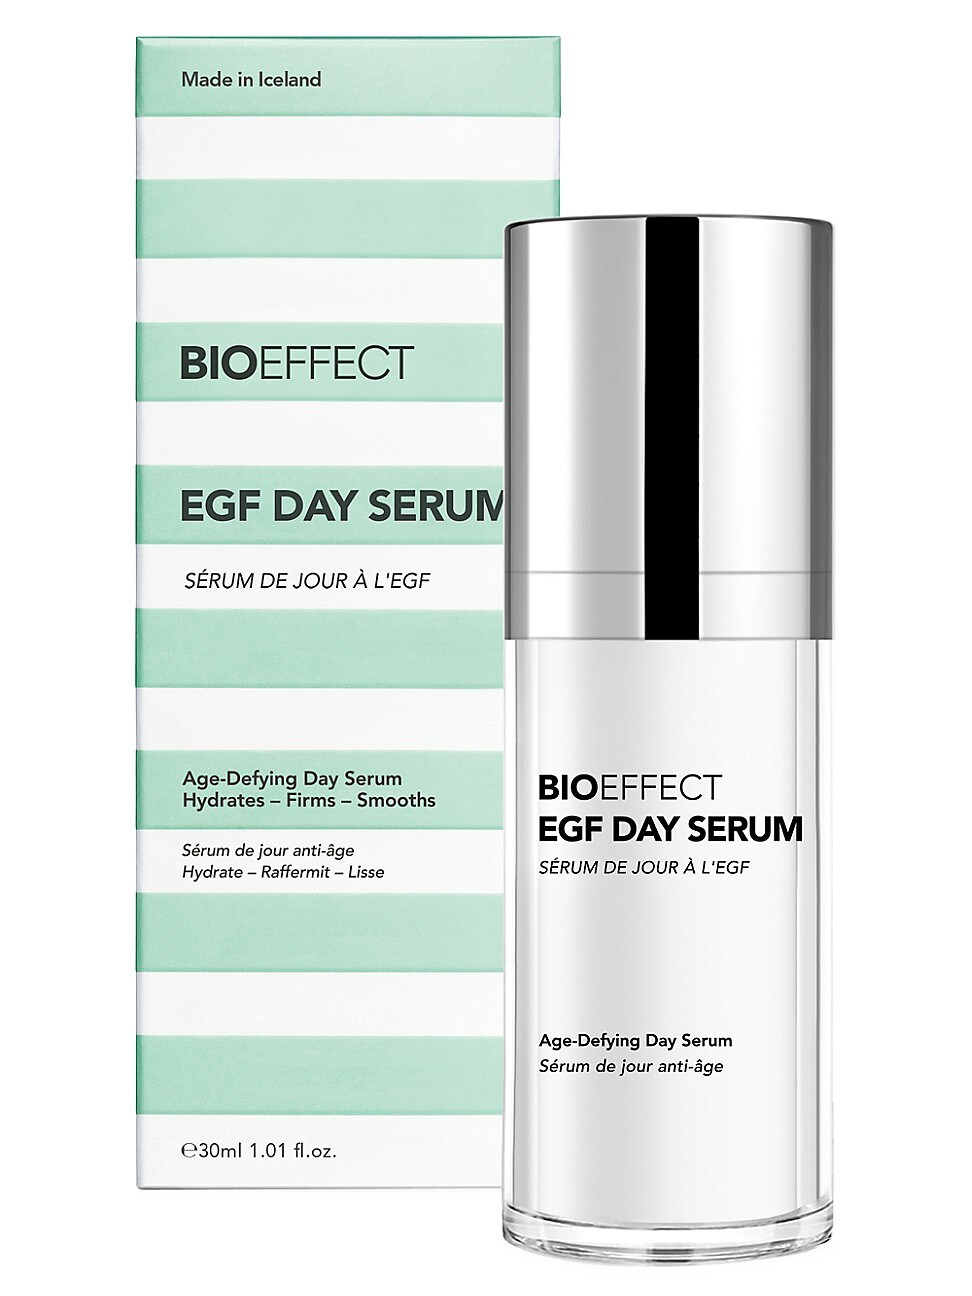 Bioeffect WOMEN'S EGF DAY SERUM